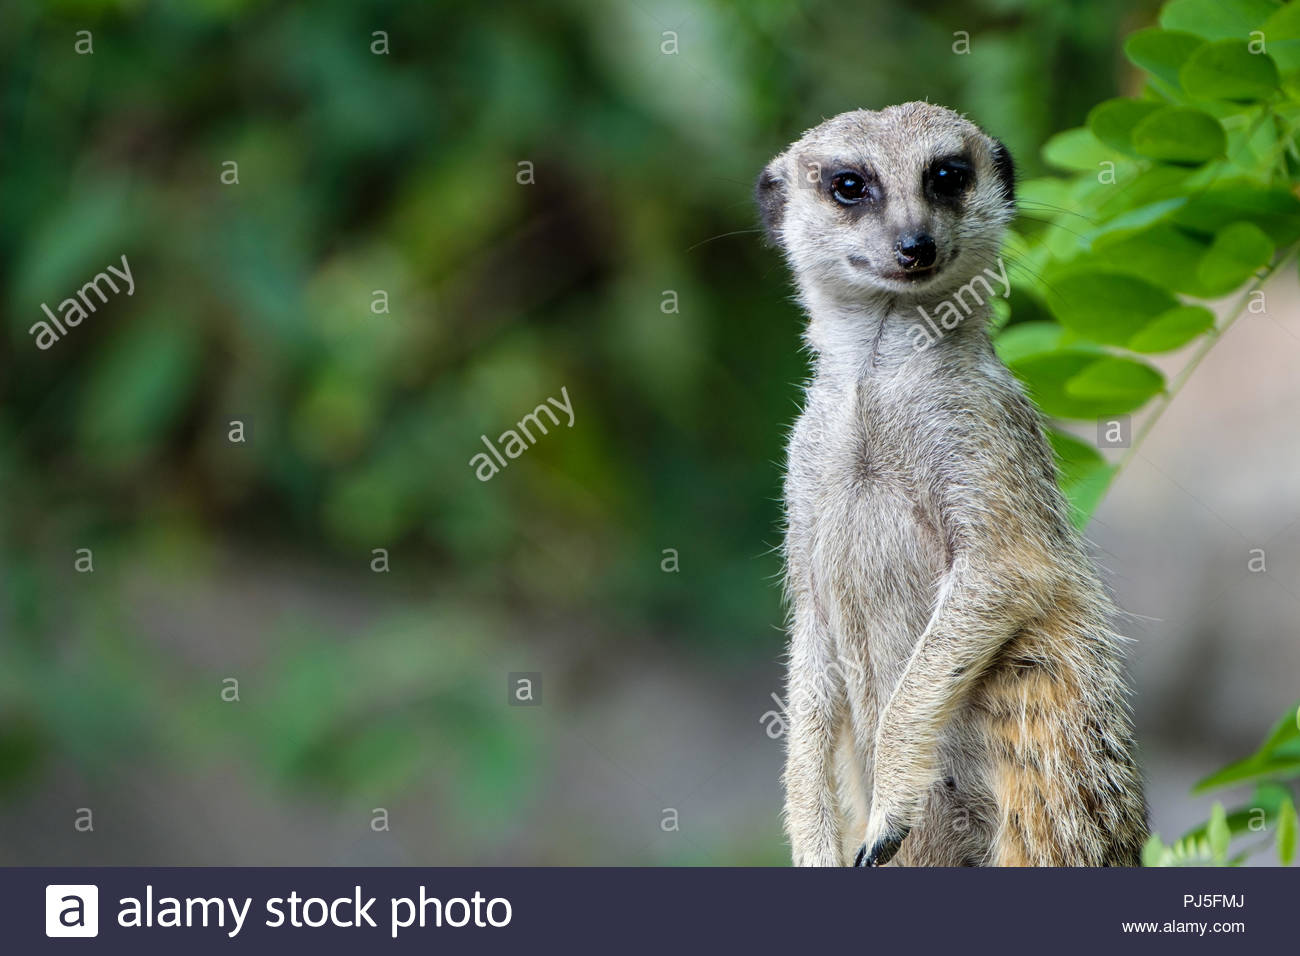 Portrait of a meerkat - Stock Image